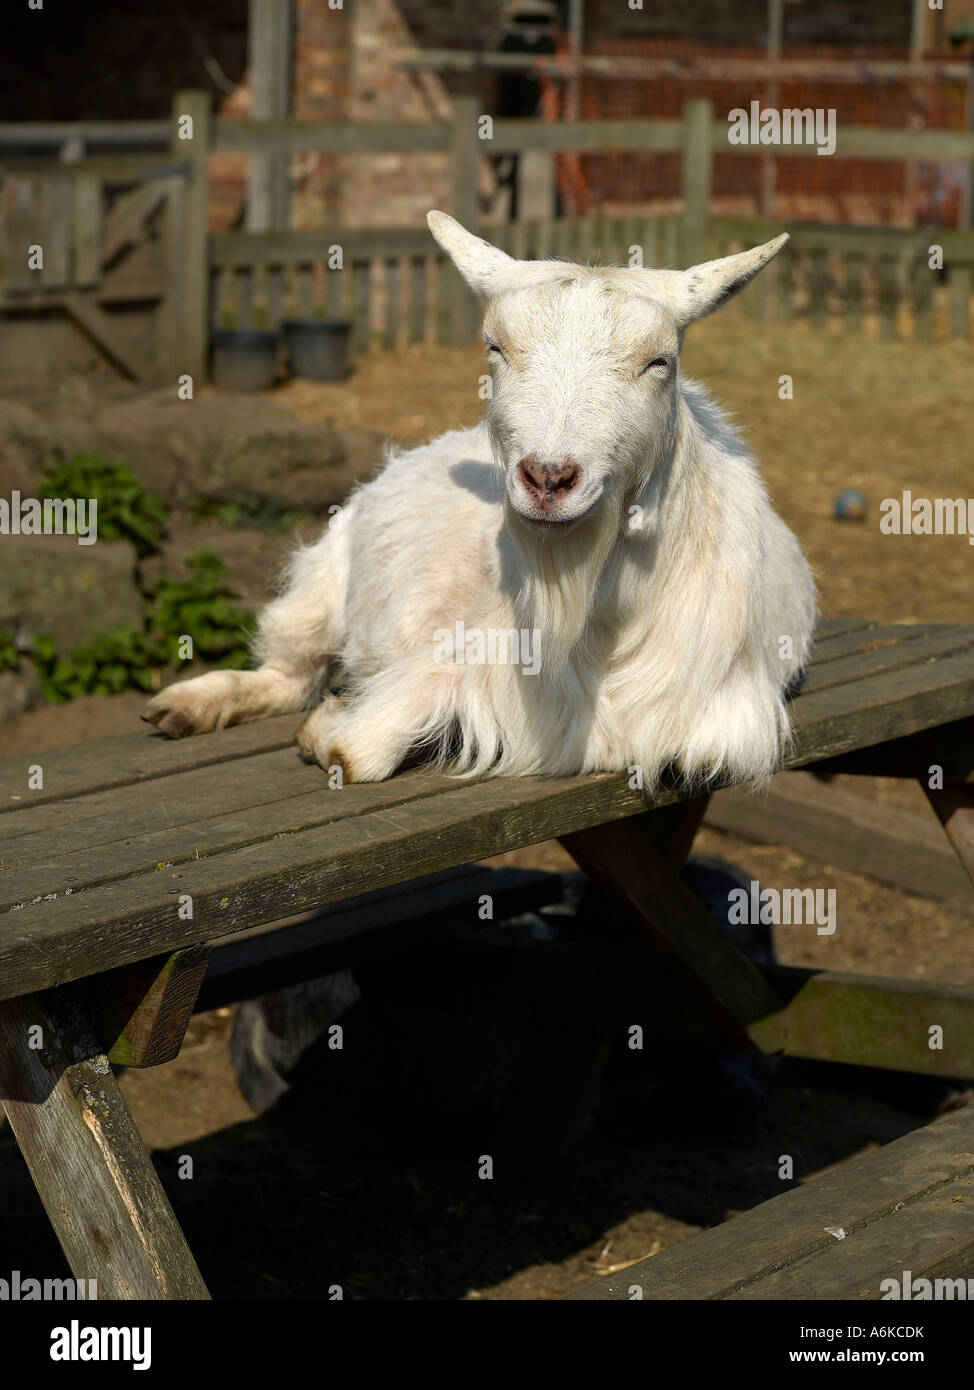 A white goat sitting on top of a table smiling in the sunshine. - Stock Image